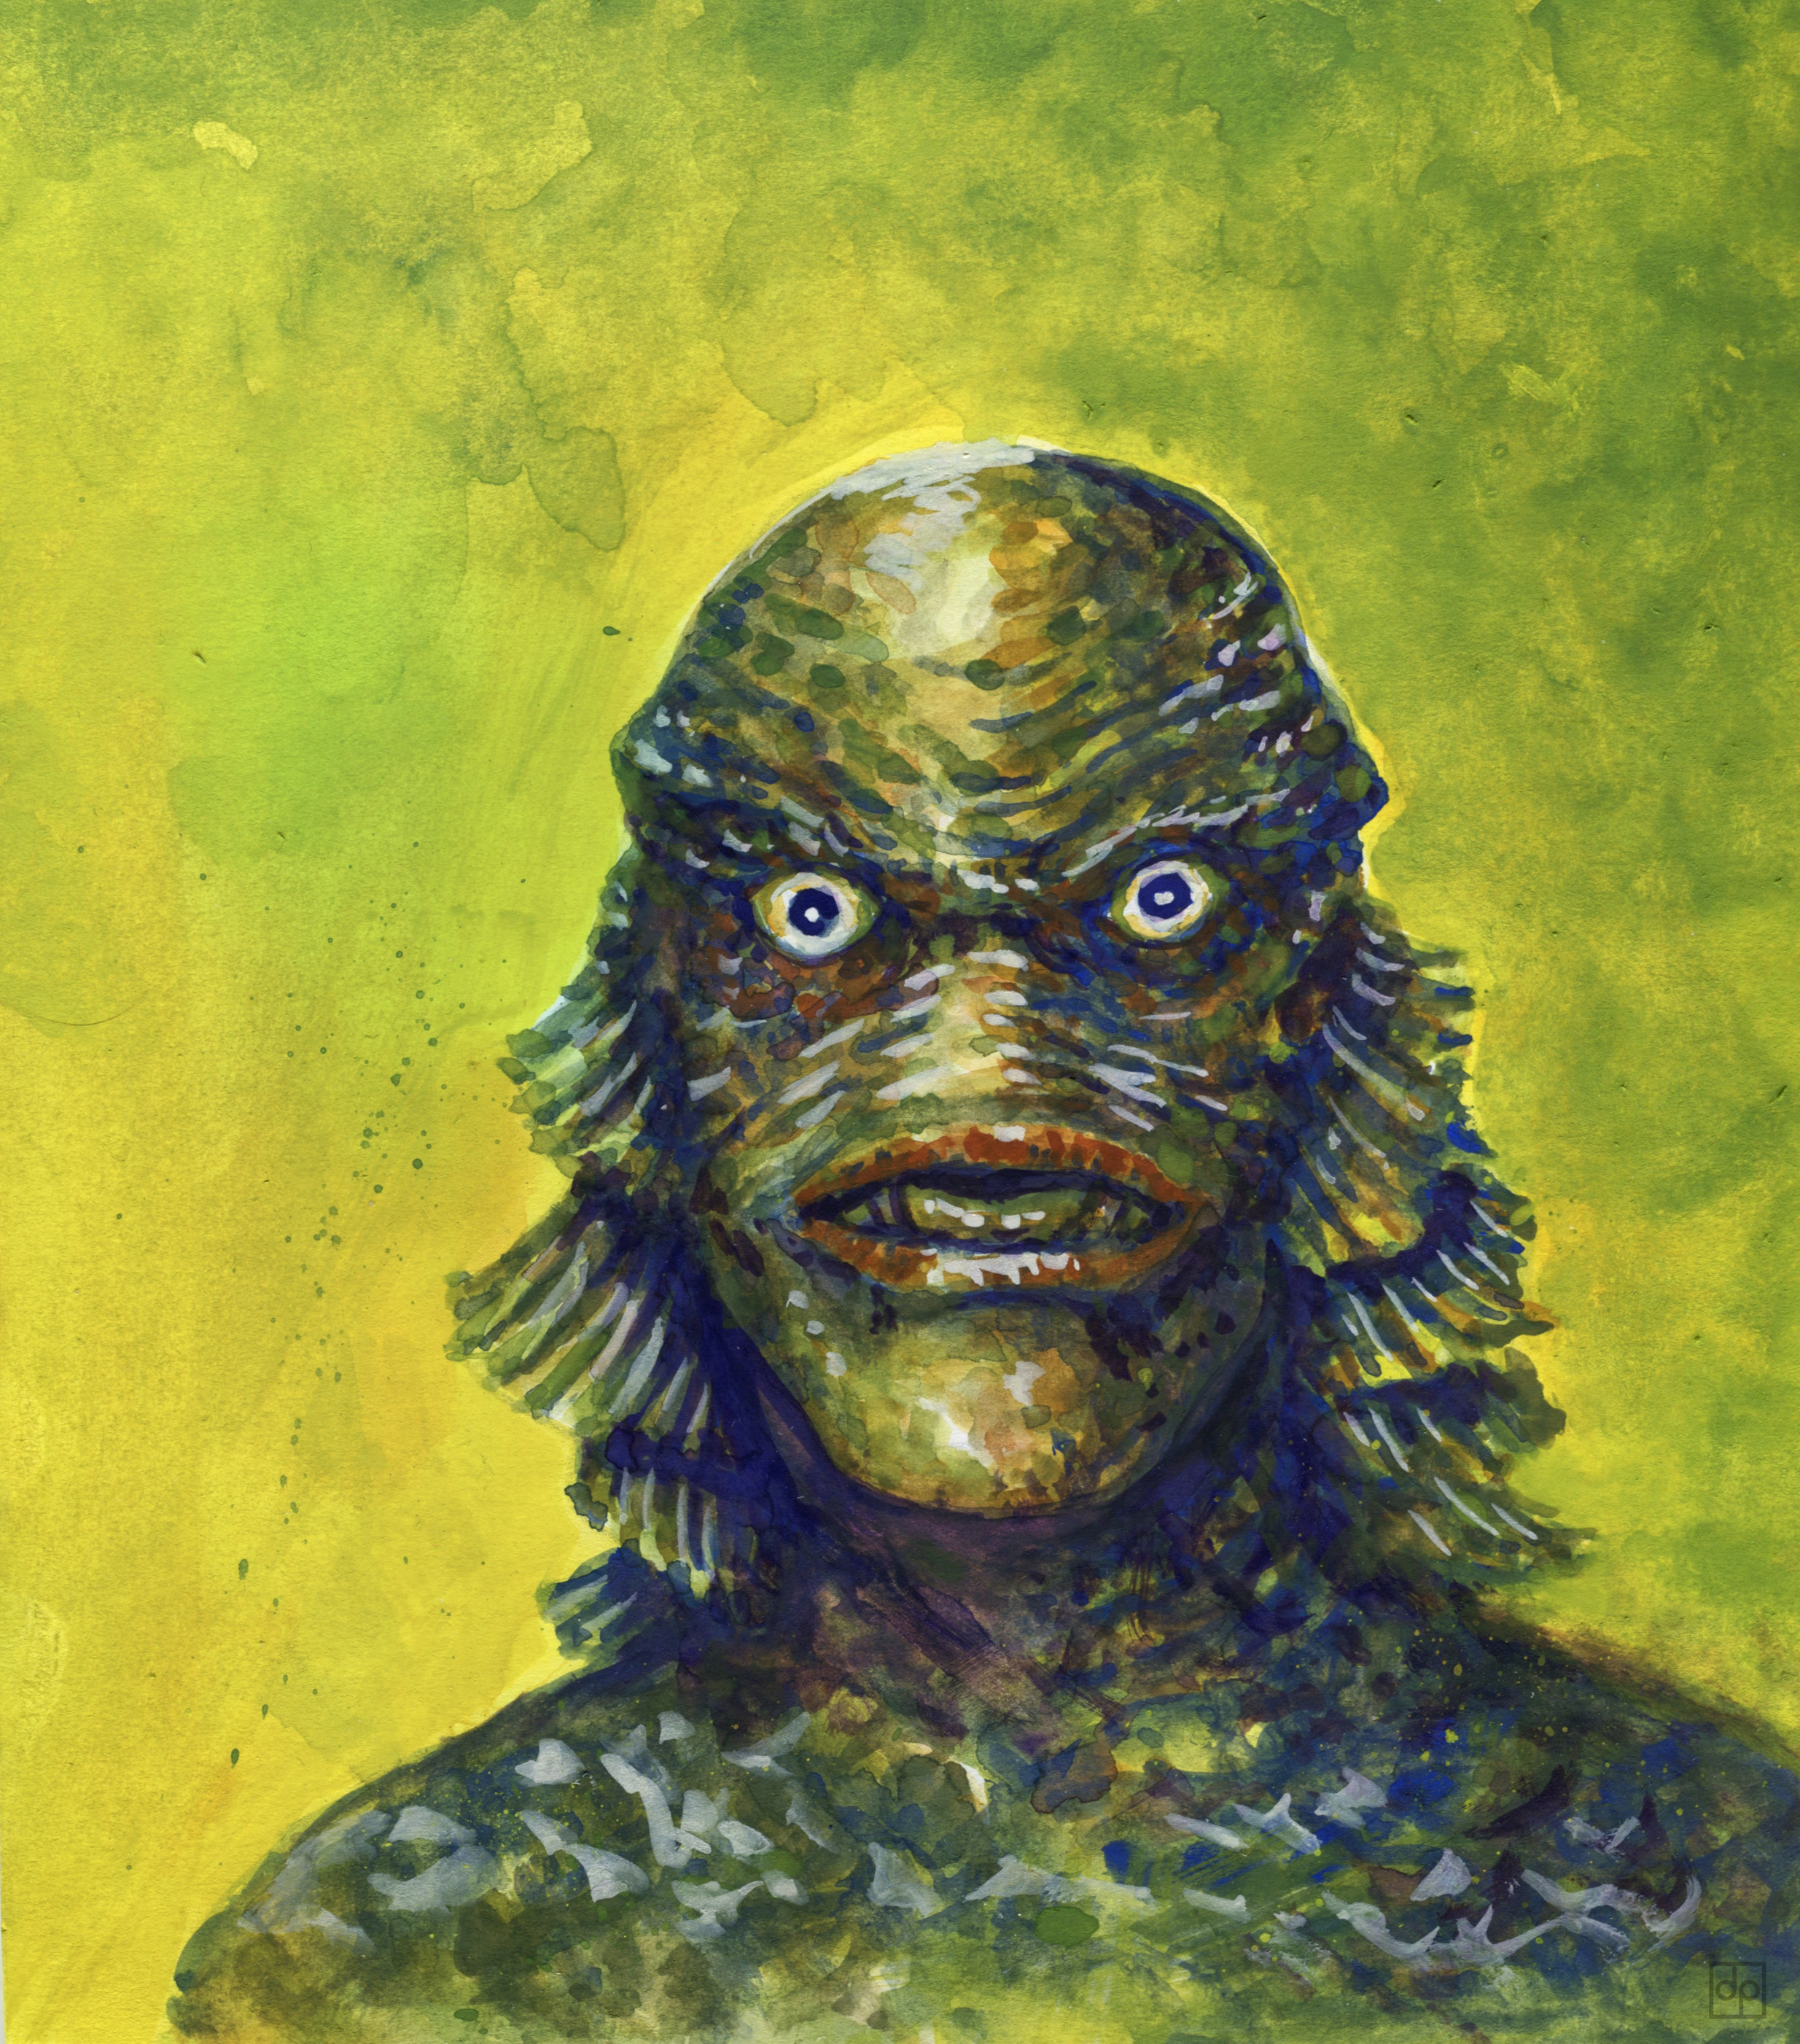 Creature From The Black Lagoon.jpg